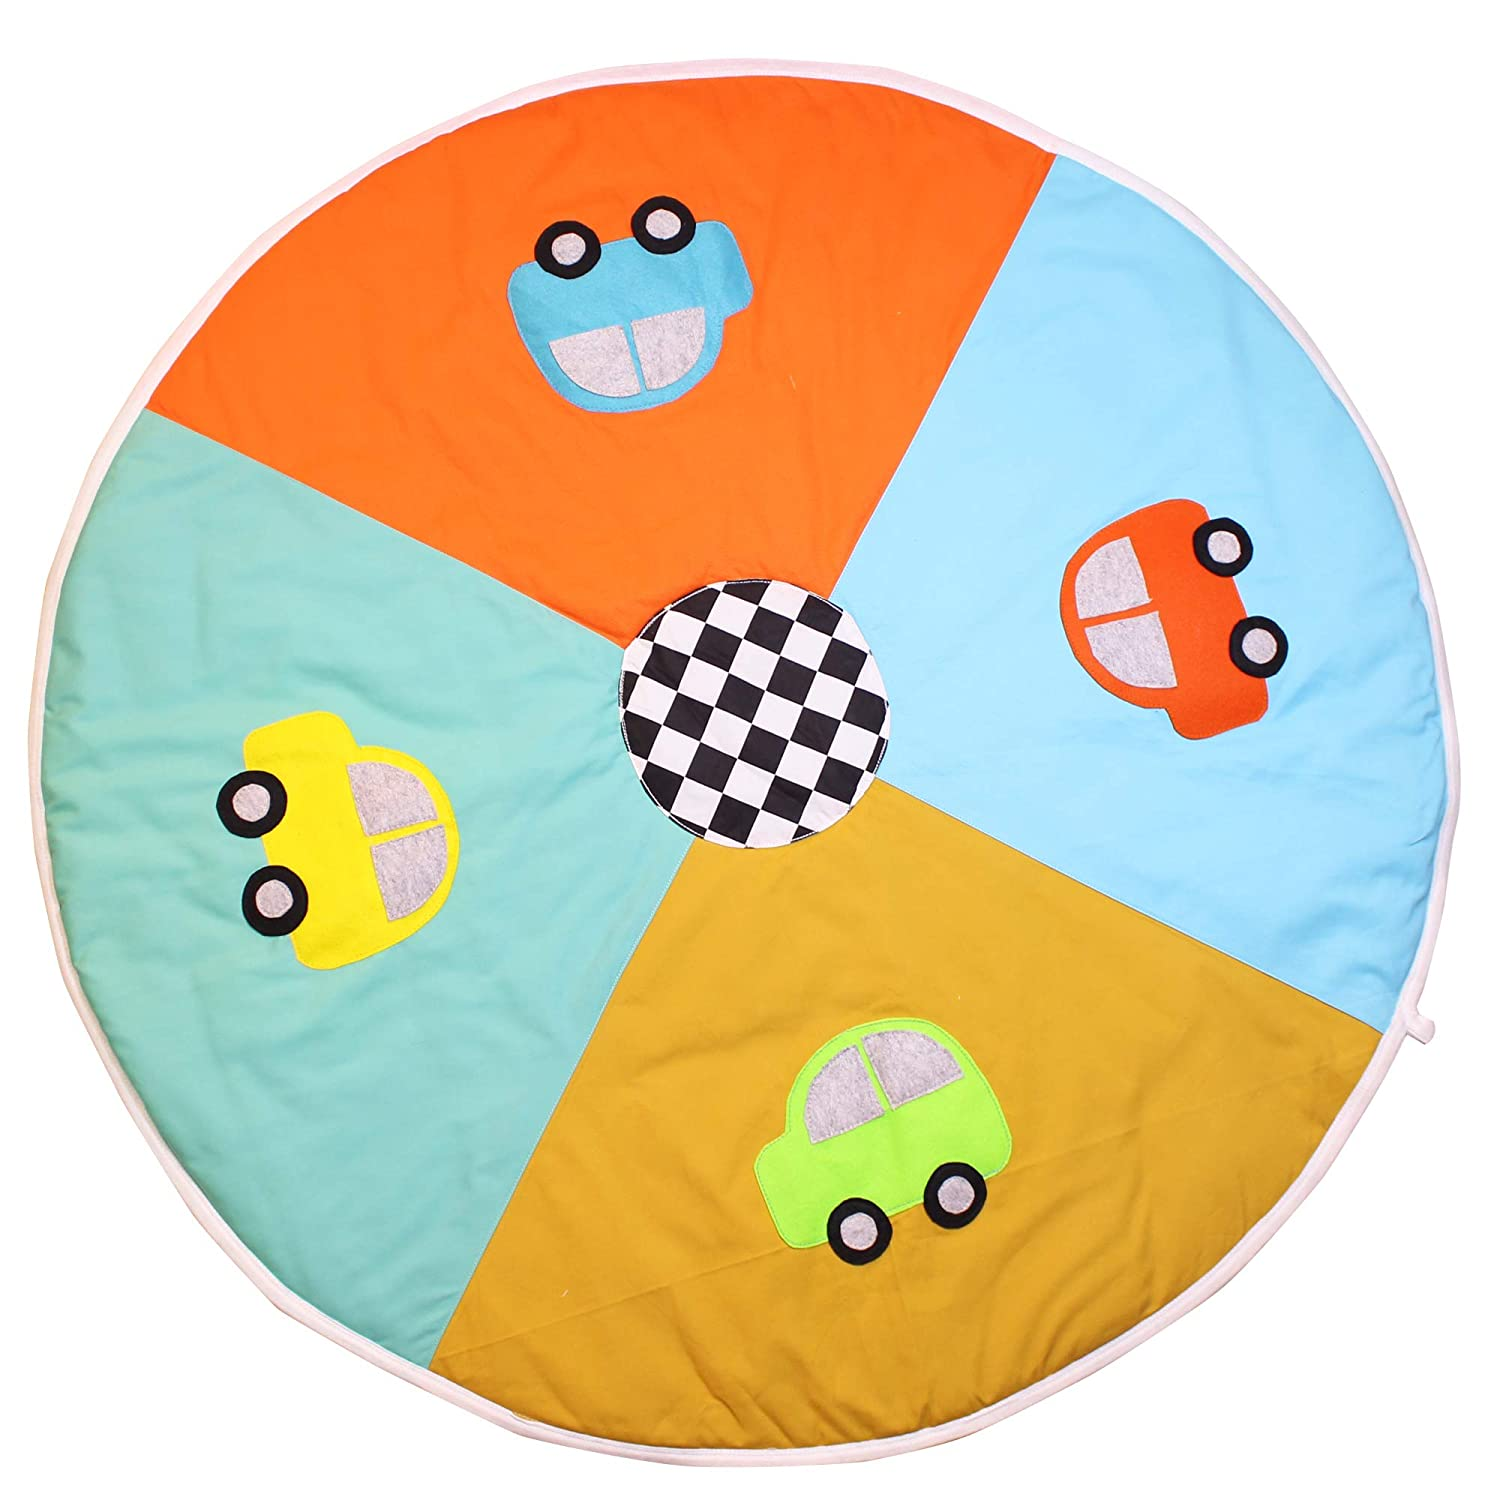 Kadambaby Playmat for Babies - Large Portable & Washable